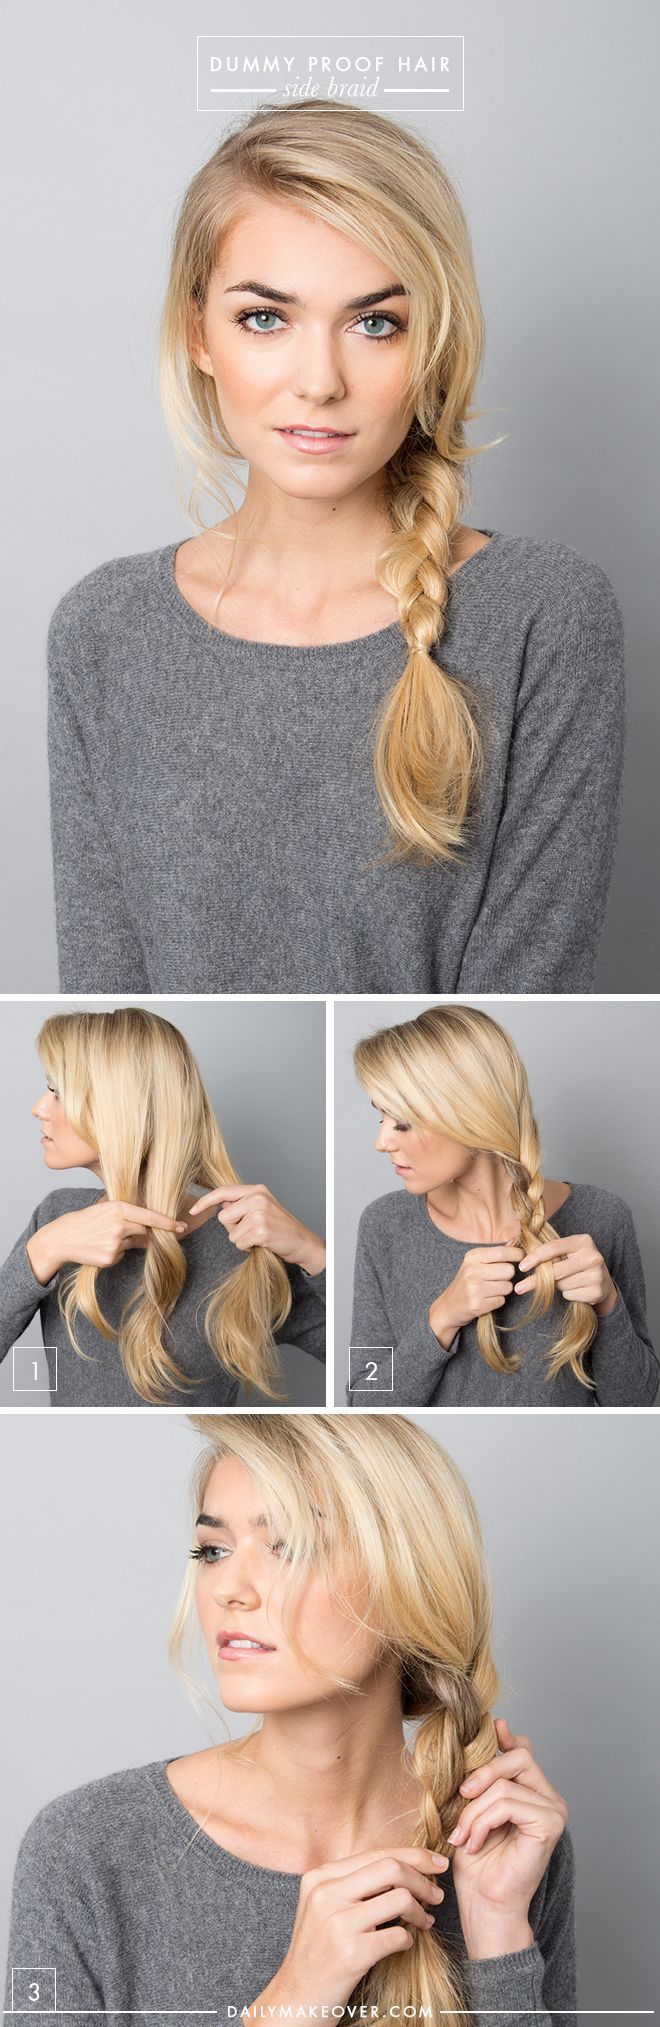 5 Dummy Proof Hairstyles That Everyone Can Master   Daily Makeover